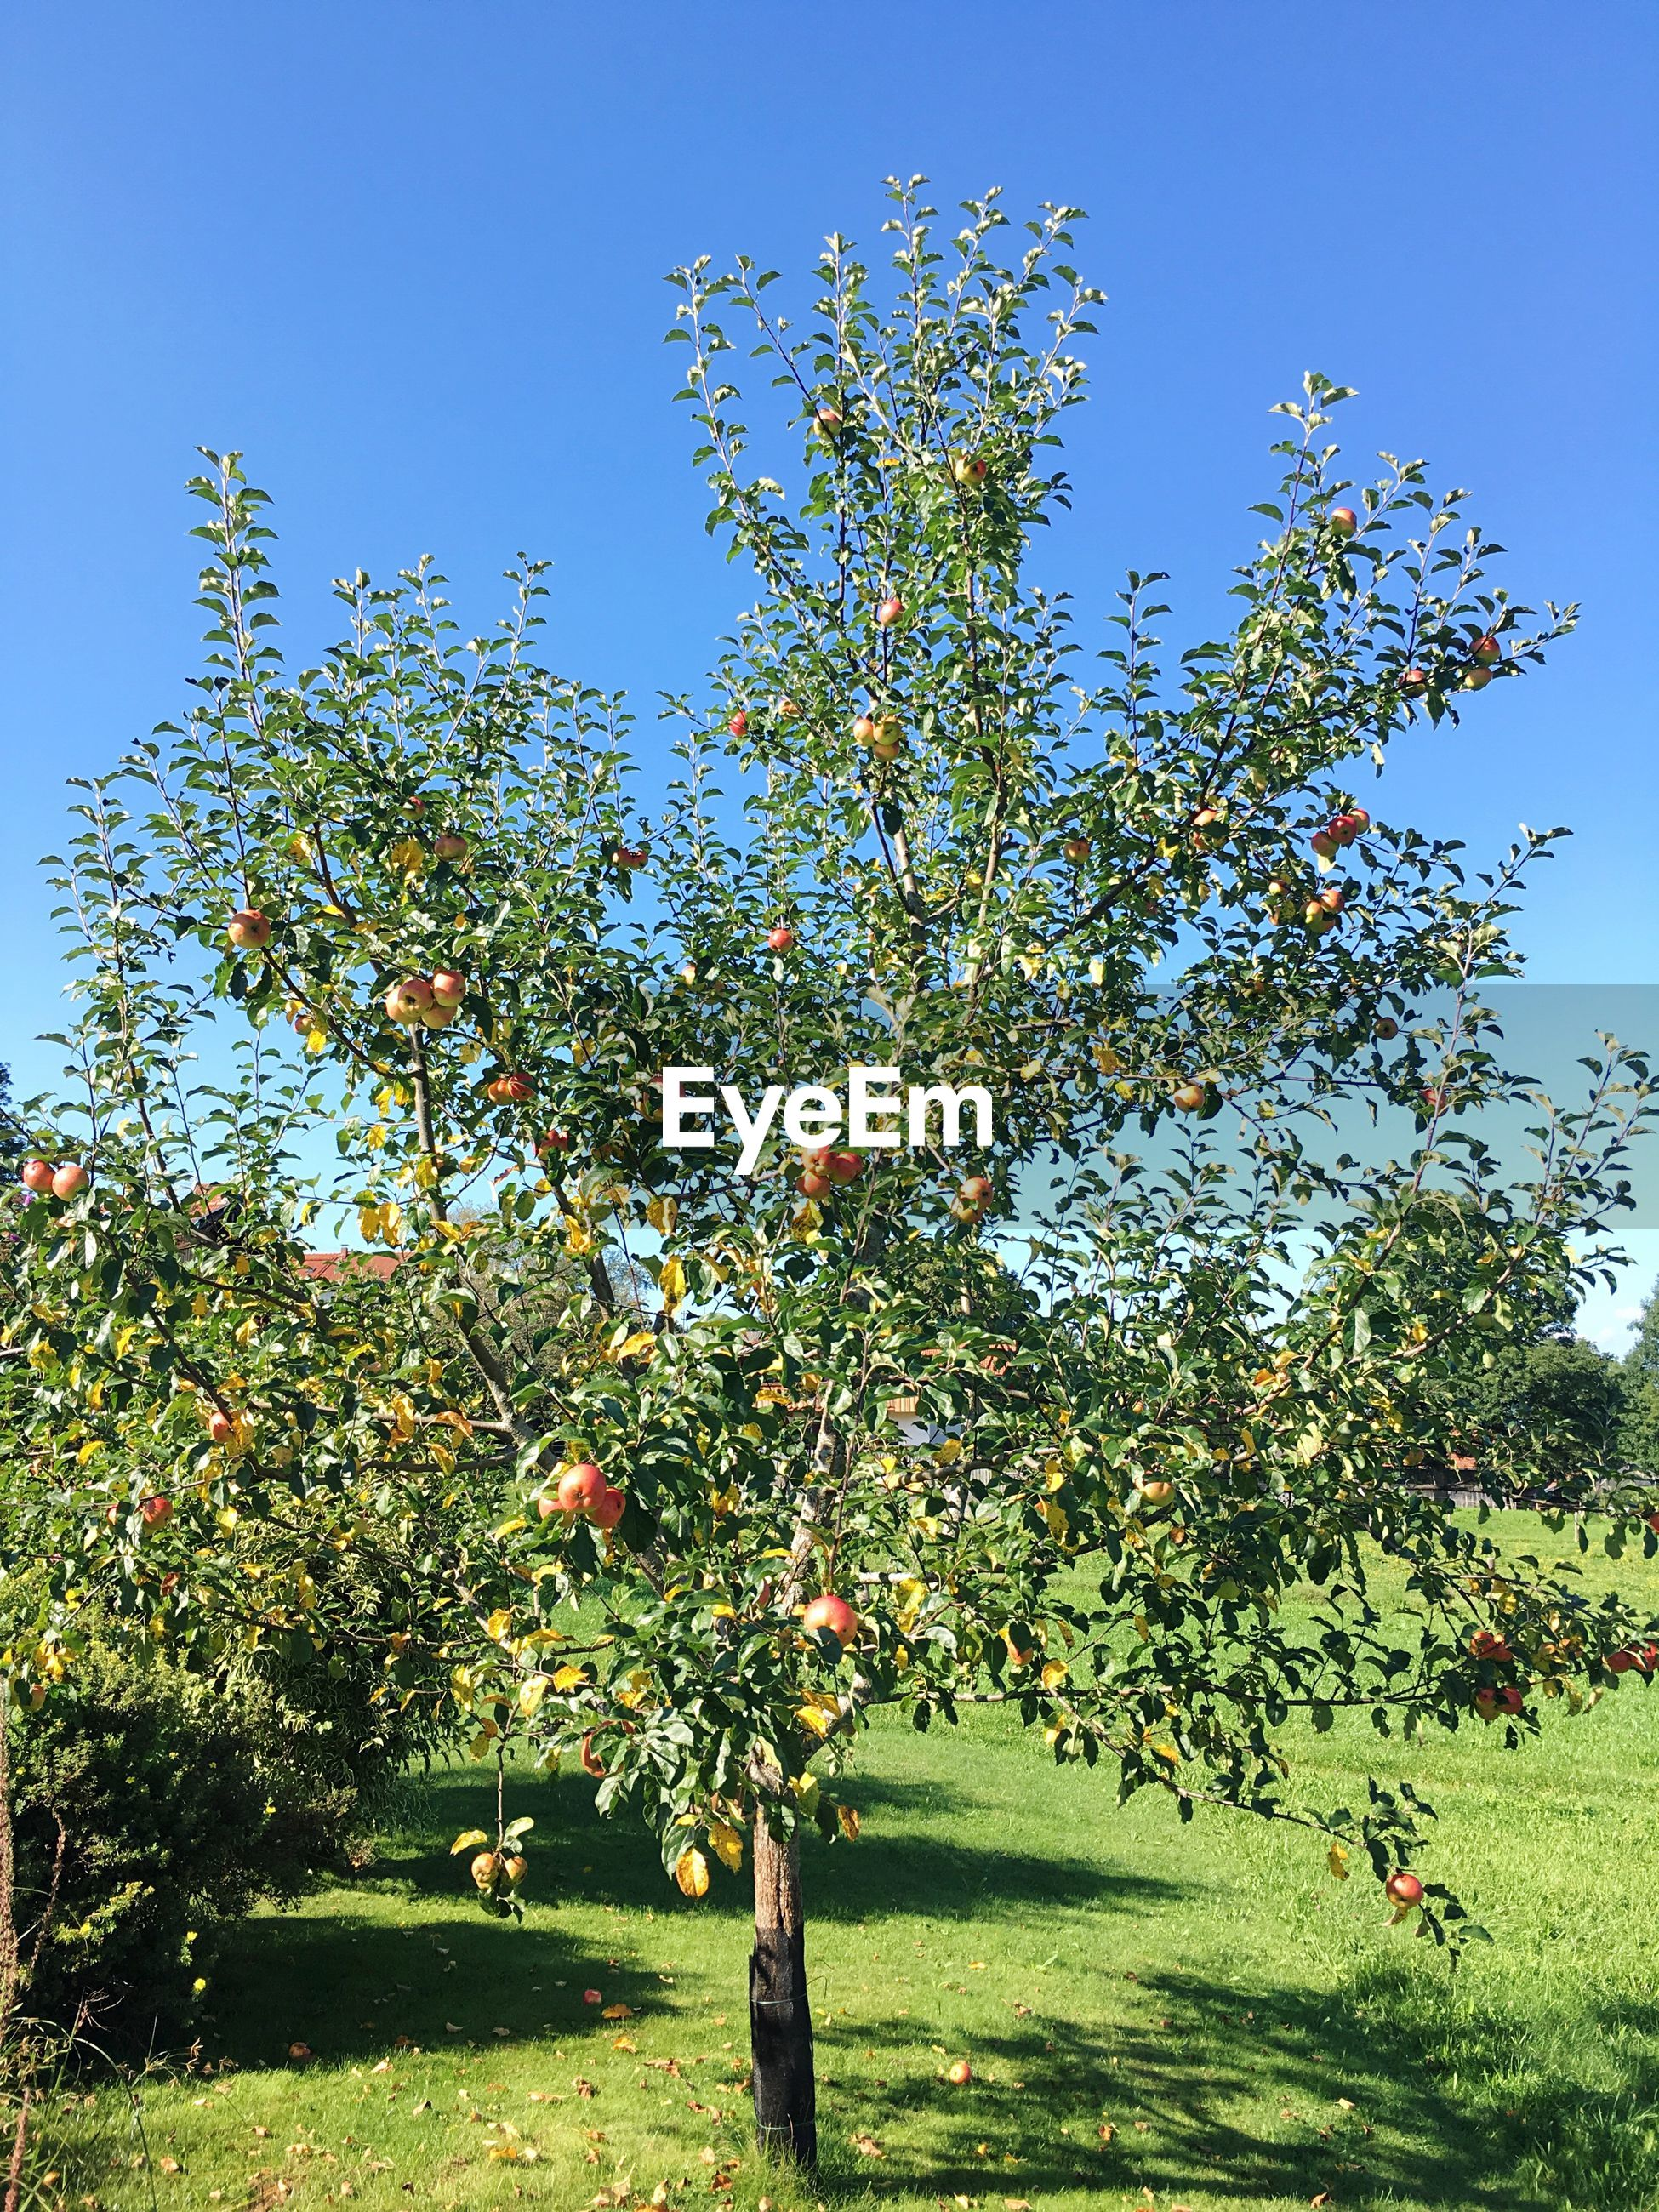 Apple tree growing on field against clear blue sky on sunny day